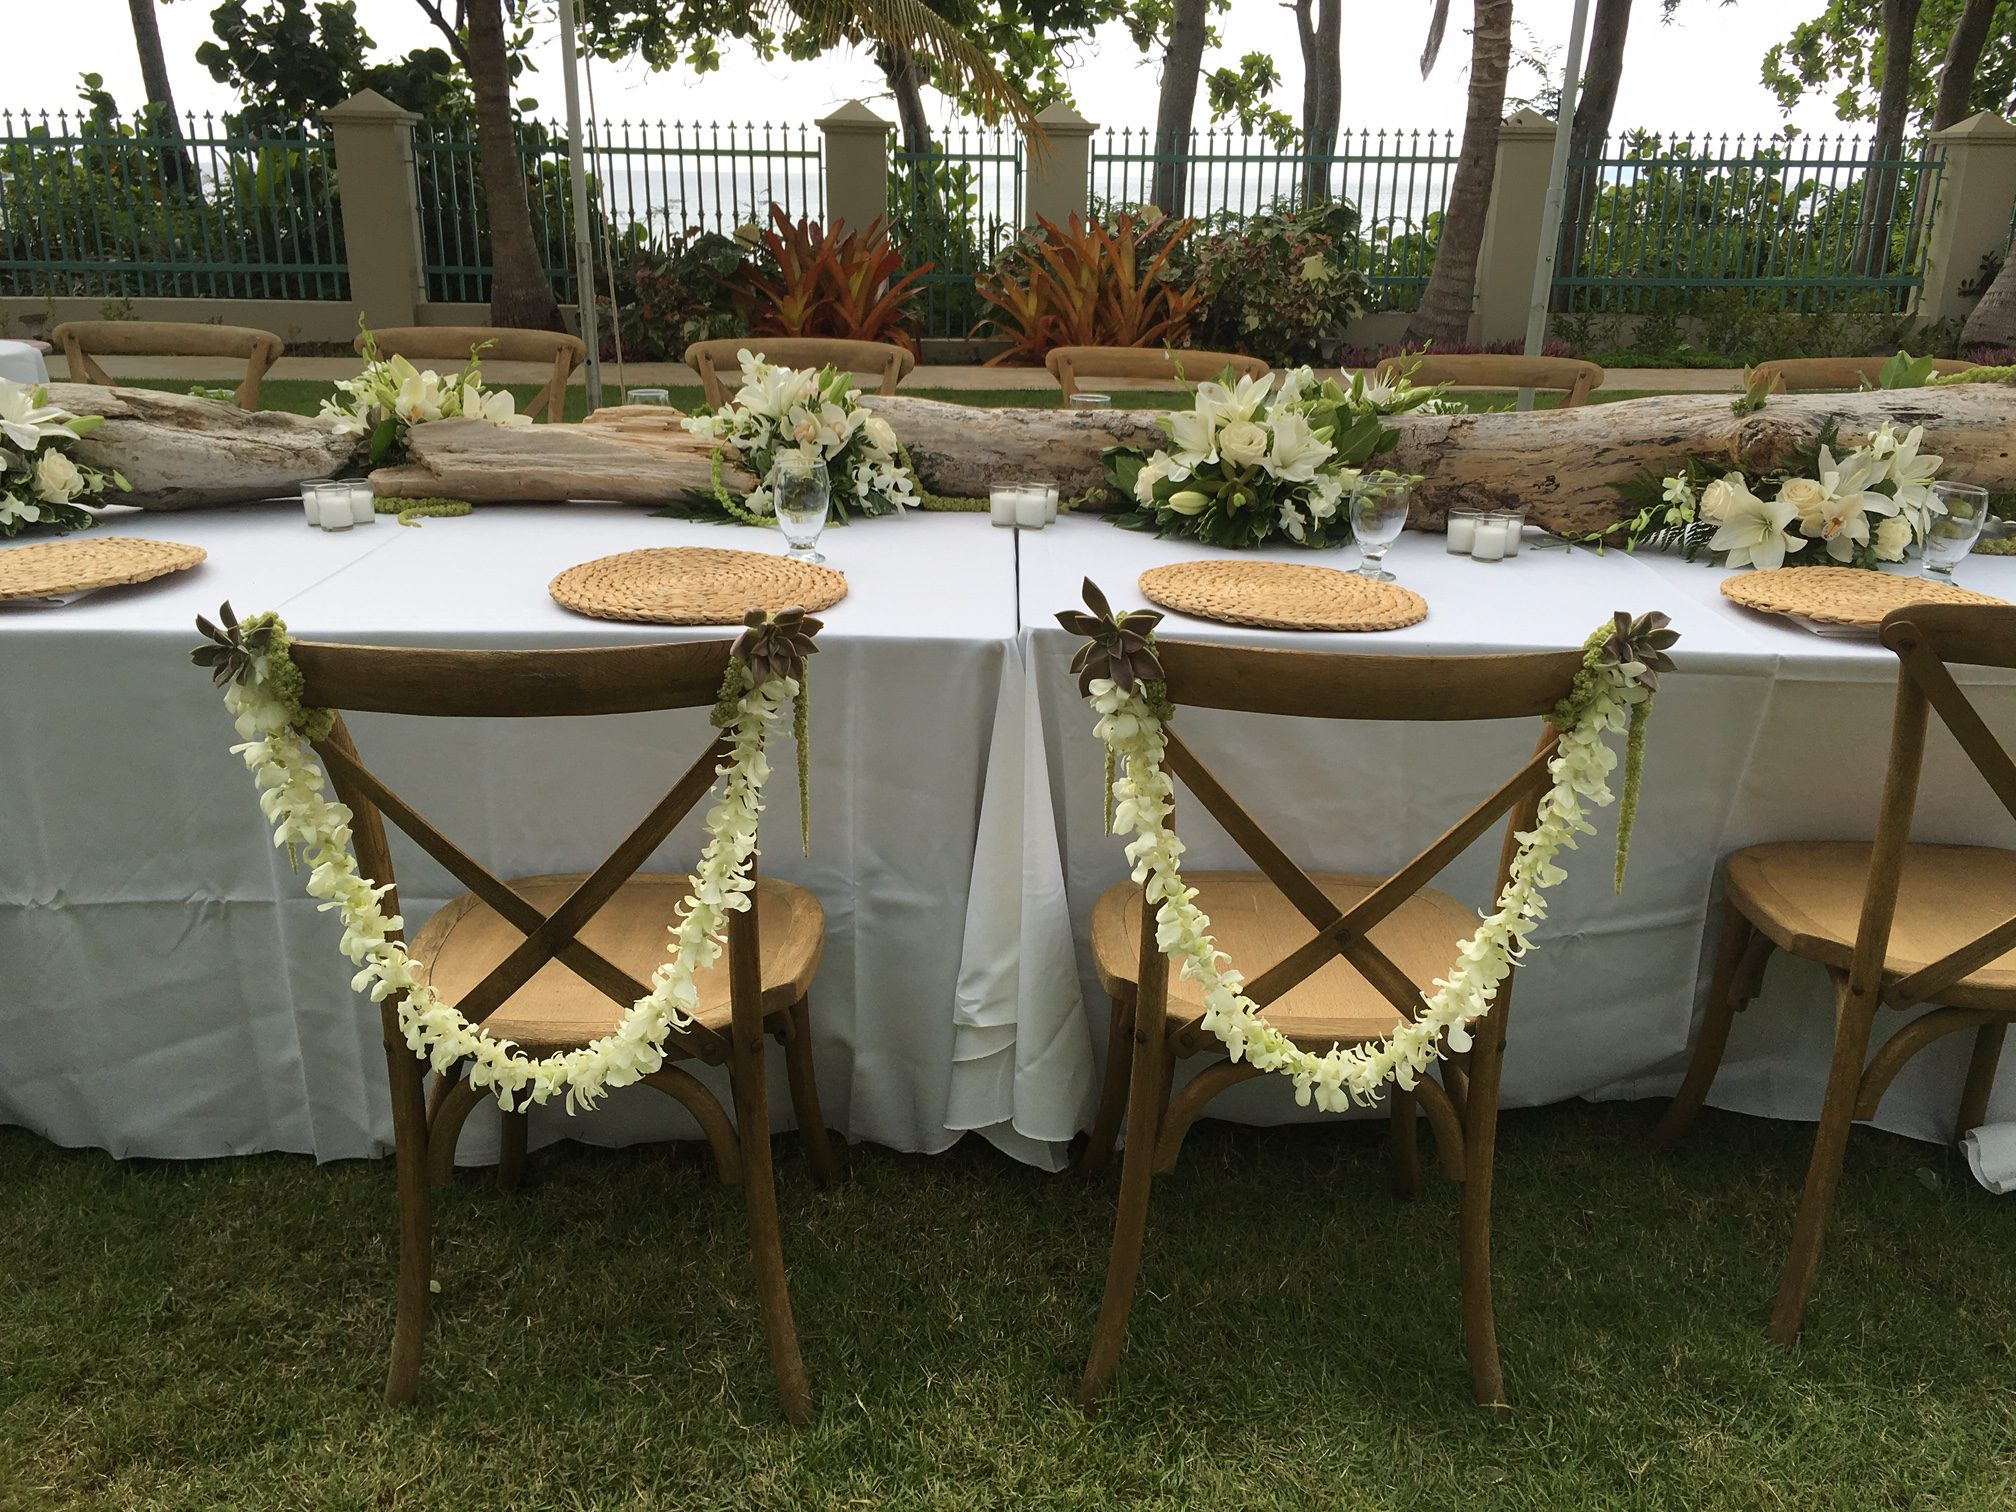 white orchid leis w/ succulent for chair decor